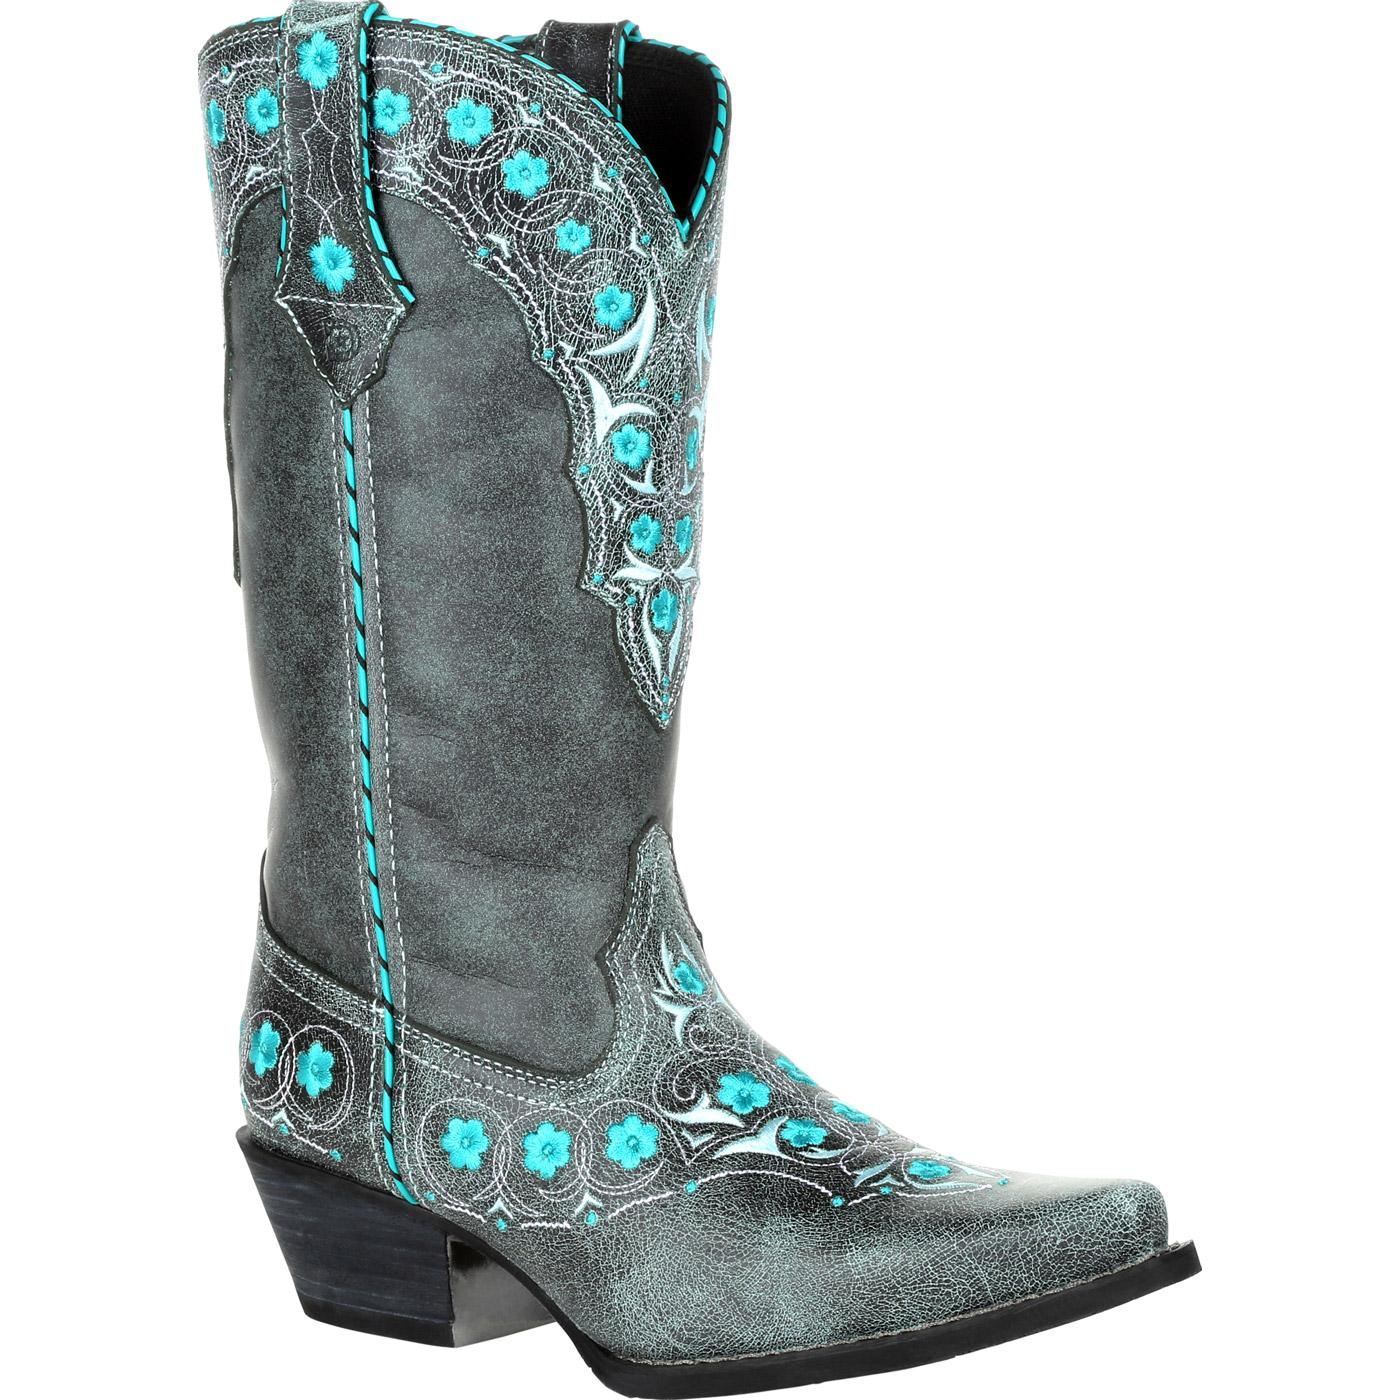 554118282a6 Crush By Durango Women's Blue Floral Western Boot